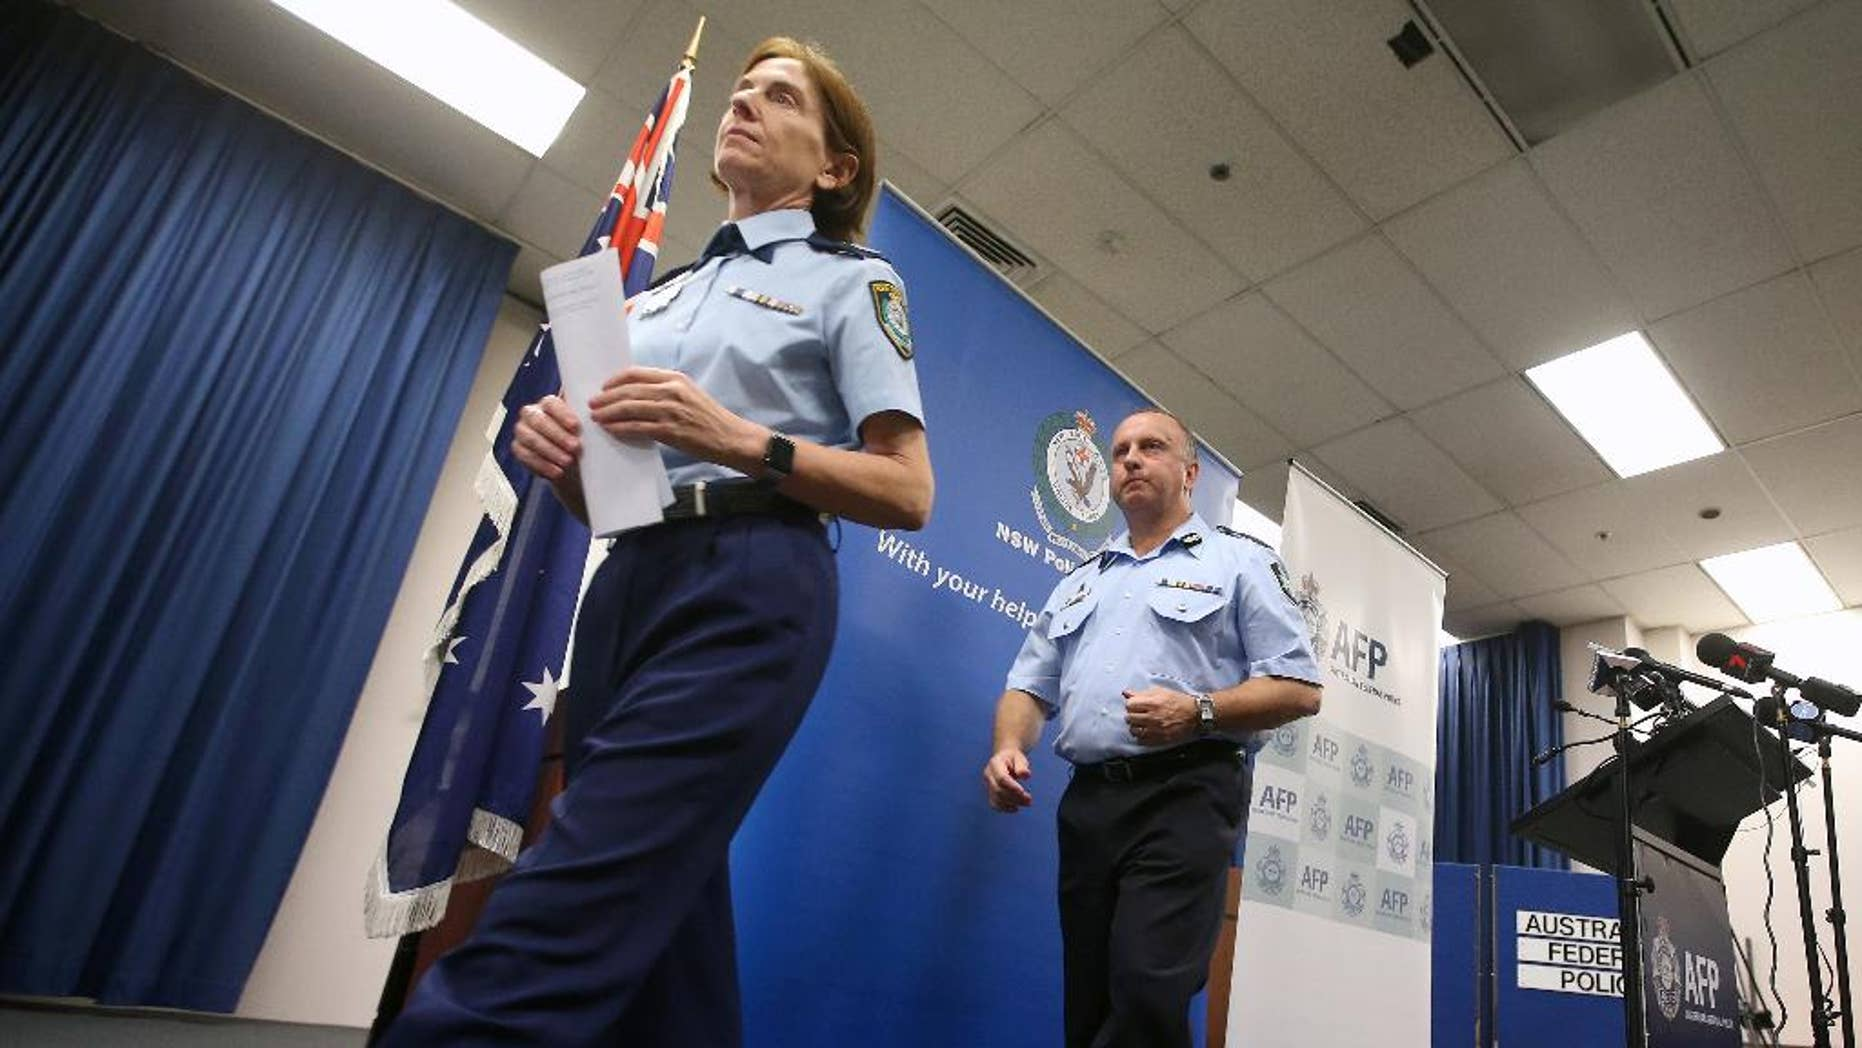 """FILE - In this May 17, 2016 file photo, New South Wales Deputy Police Commissioner Catherine Burn, left, and Australian Federal Police Acting Deputy Commissioner Neil Gaughan leave a news conference in Sydney. A man charged with committing a terrorist act and attempted murder after allegedly stabbing a man in Sydney was inspired by the Islamic State group, police said Sunday, Sept. 11. The suspect, Ihsas Khan, 22, and Wayne Greenhalgh, 59, who was stabbed several times by Khan, did not know each other, and Burn described the attack as planned and deliberate. """"This was clearly a very volatile, a very violent situation that police and the members of the community were confronted with,"""" Burn told reporters. (AP Photo/Rick Rycroft, File)"""